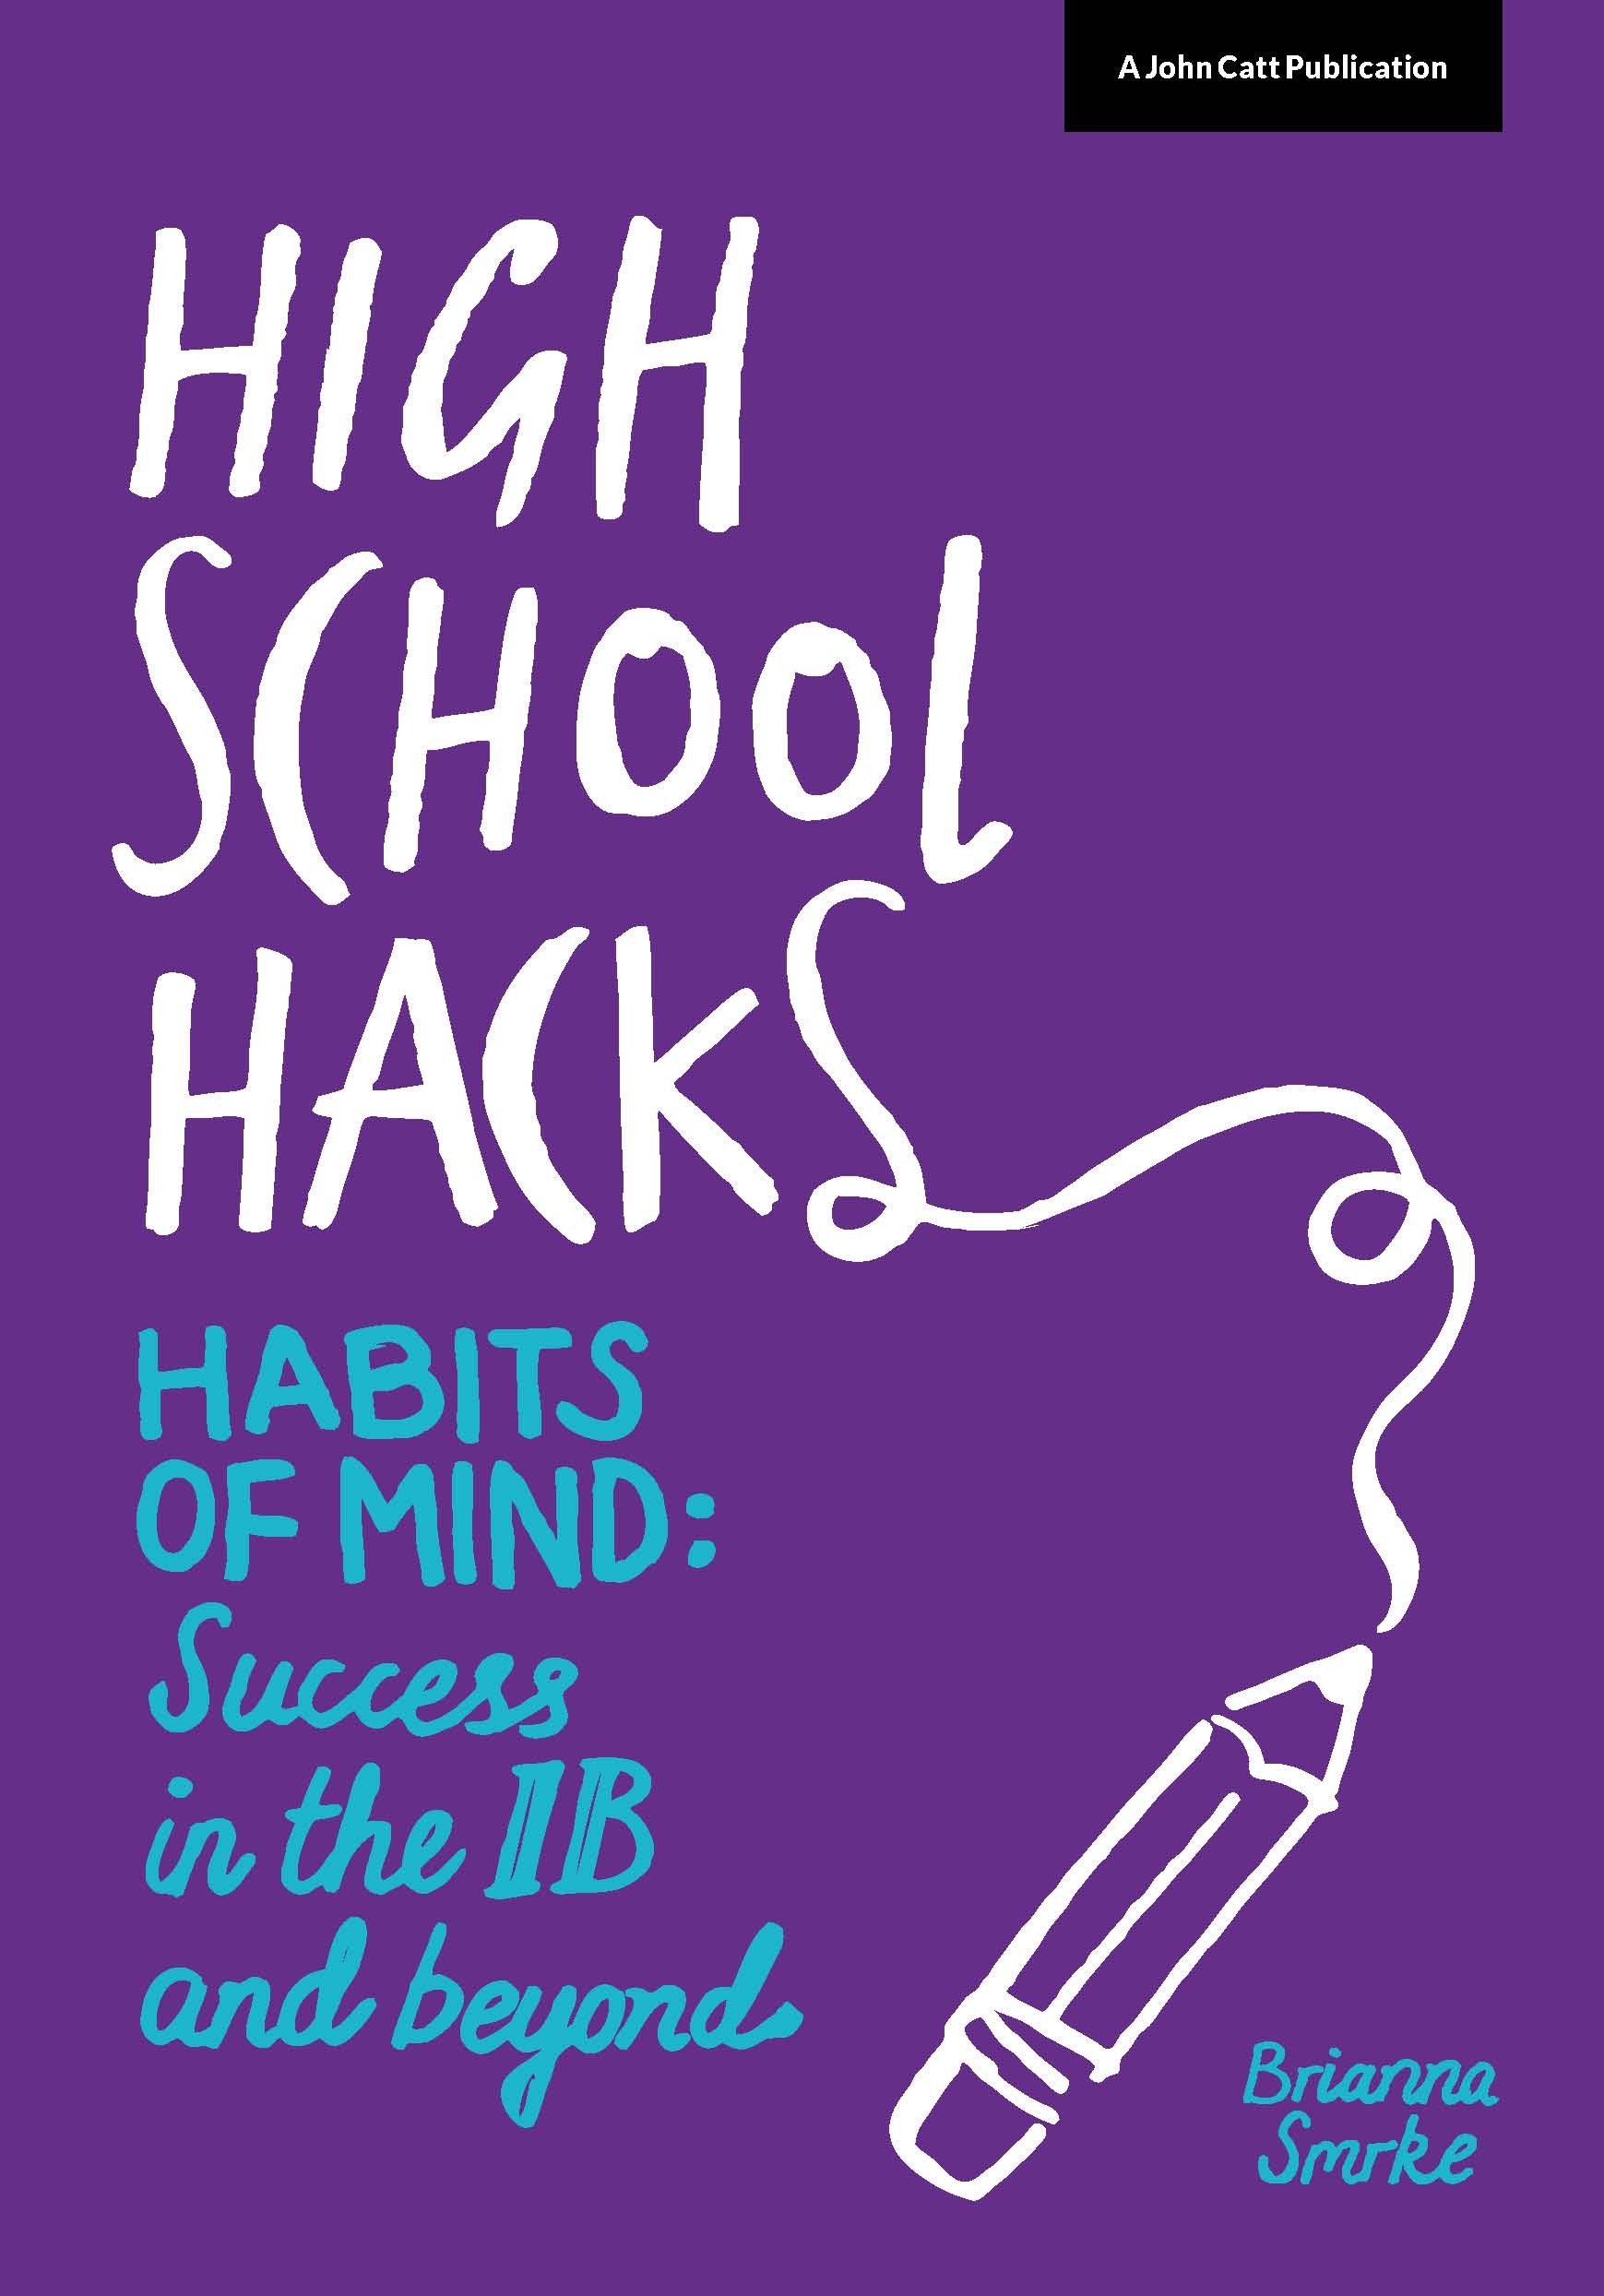 High School Hacks: Success in the IB and beyond